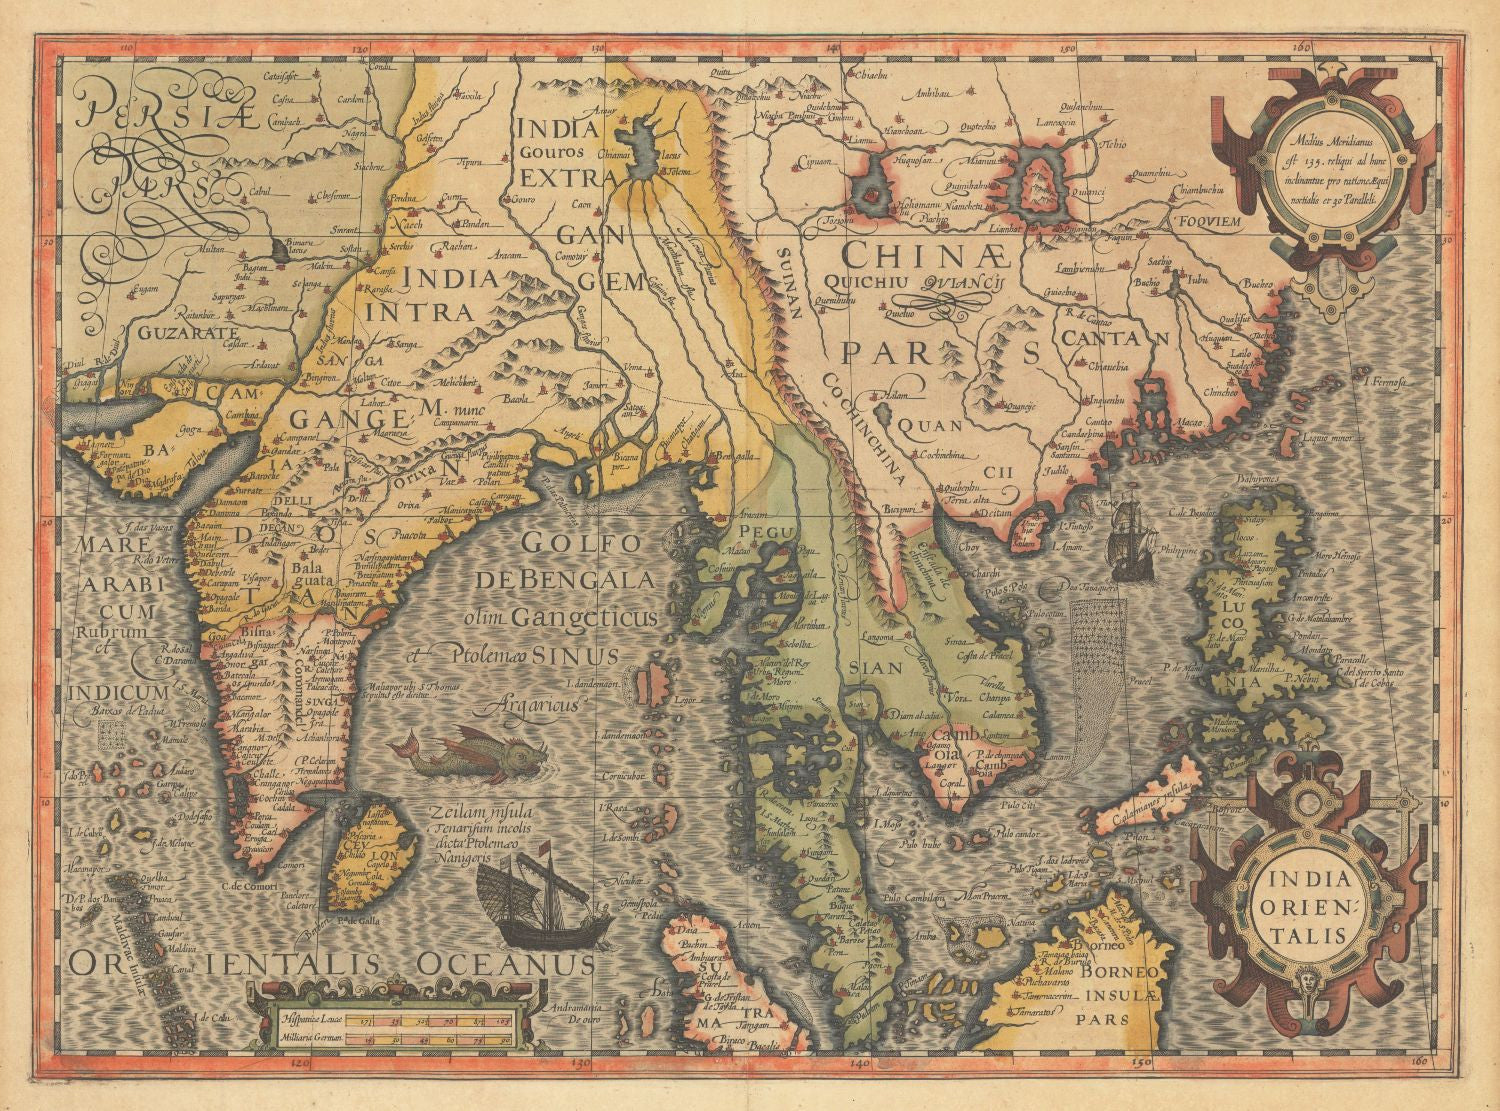 Decorative vintage world map india orientalis jodocus hondius decorative vintage world map india orientalis jodocus hondius 1606 posters gumiabroncs